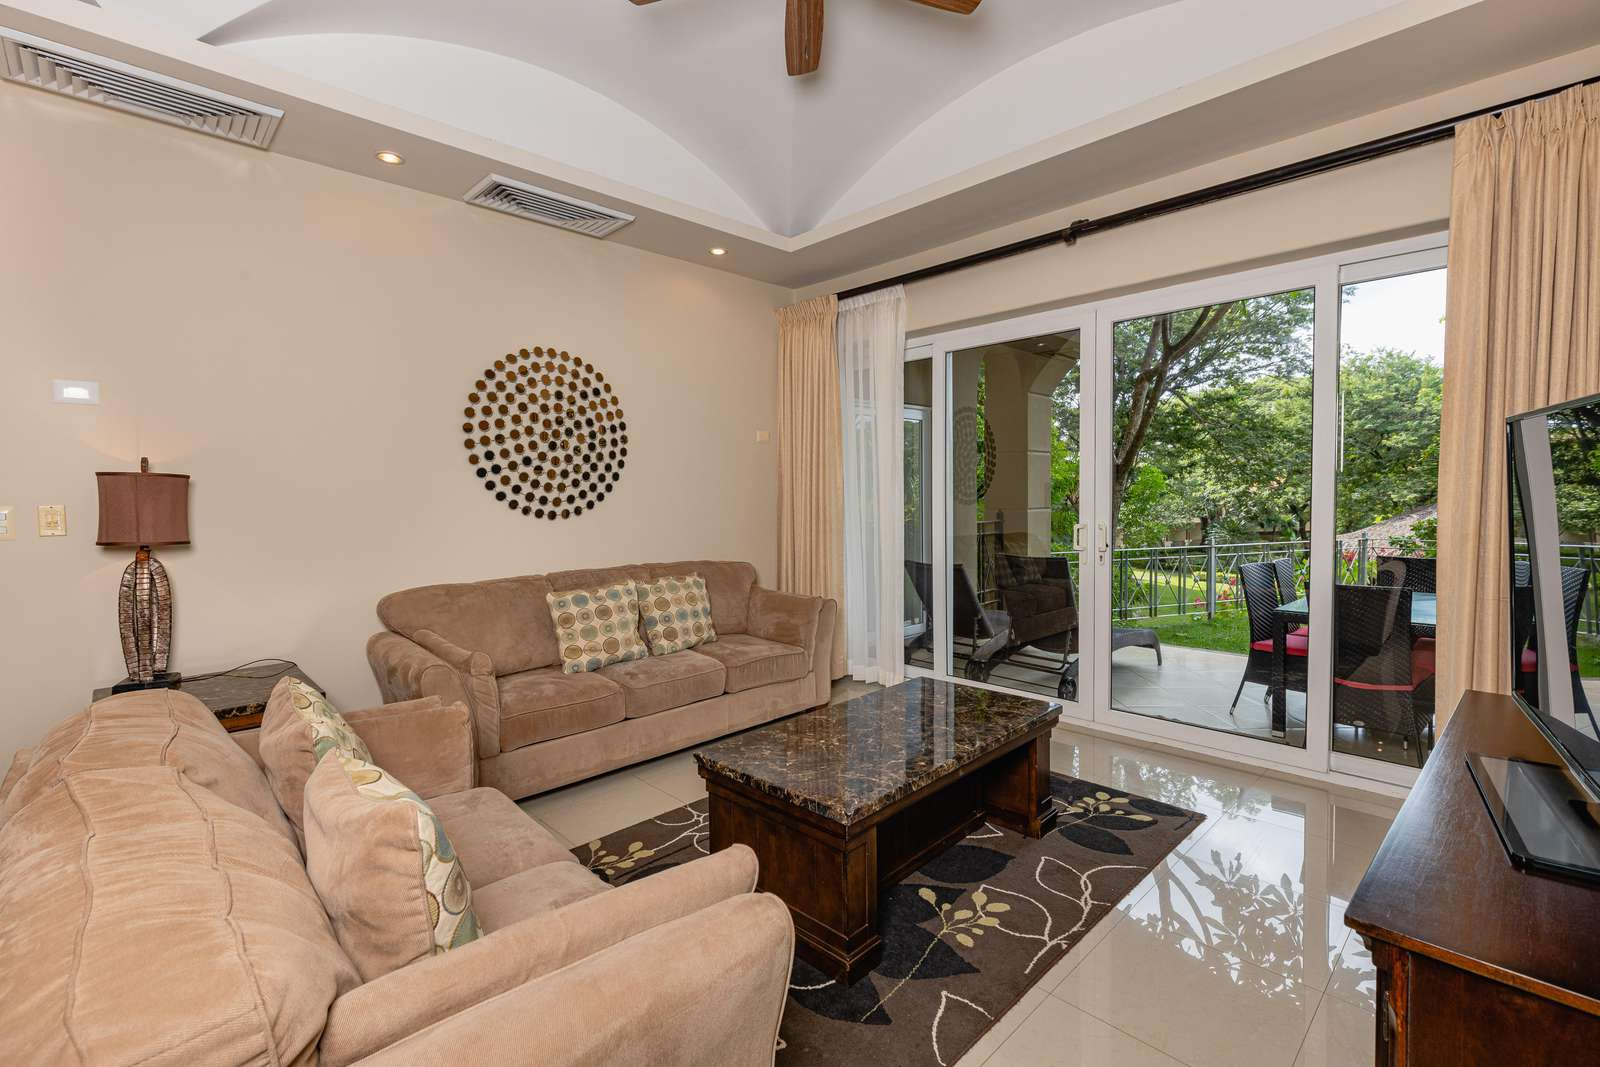 Spacious living area, access to covered terrace area